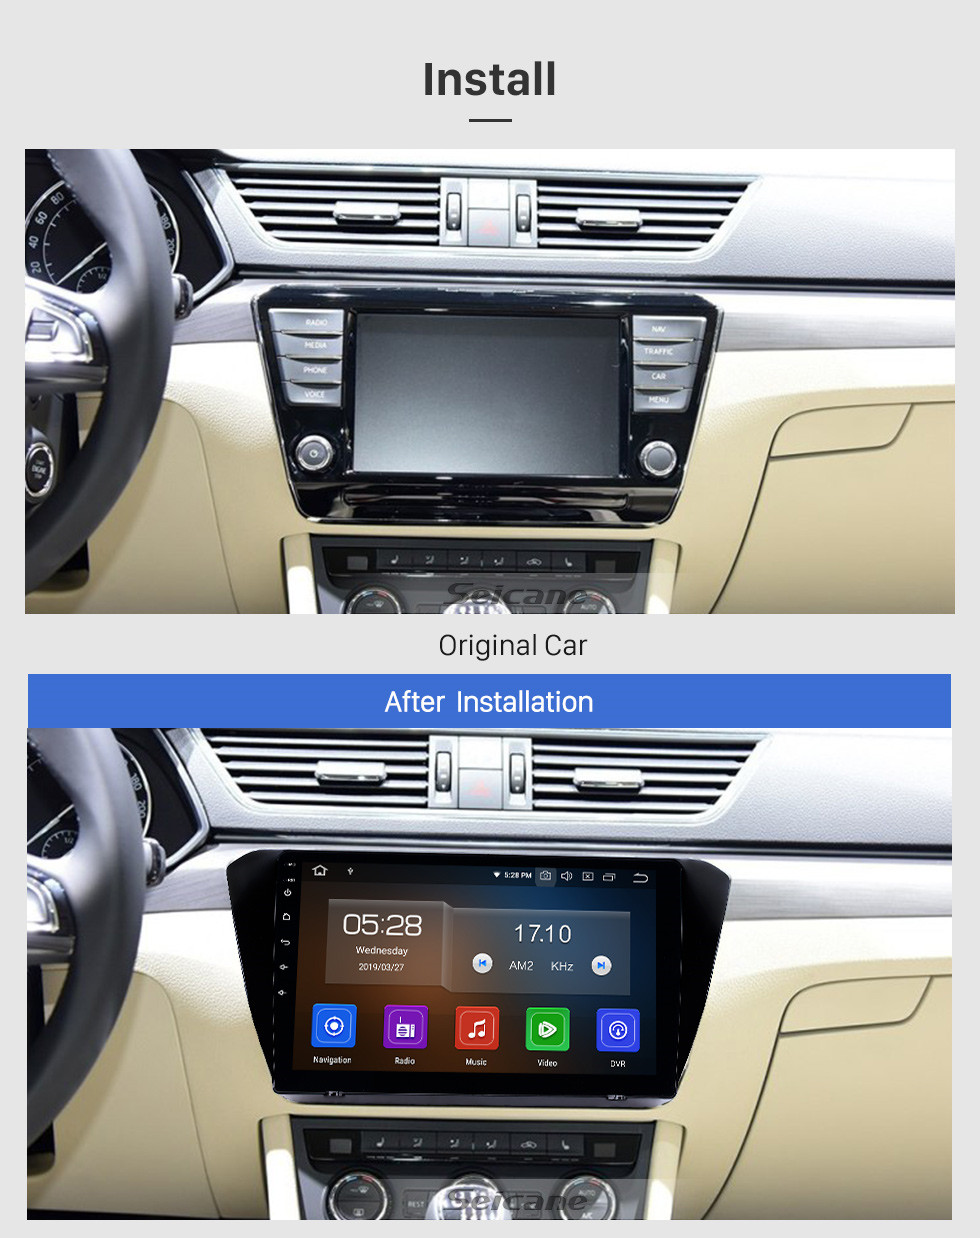 Seicane 10,1 Zoll Android 9.0 Radio für 2015-2018 Skoda Superb Bluetooth HD Touchscreen GPS Navigation Carplay USB-Unterstützung TPMS DAB + DVR